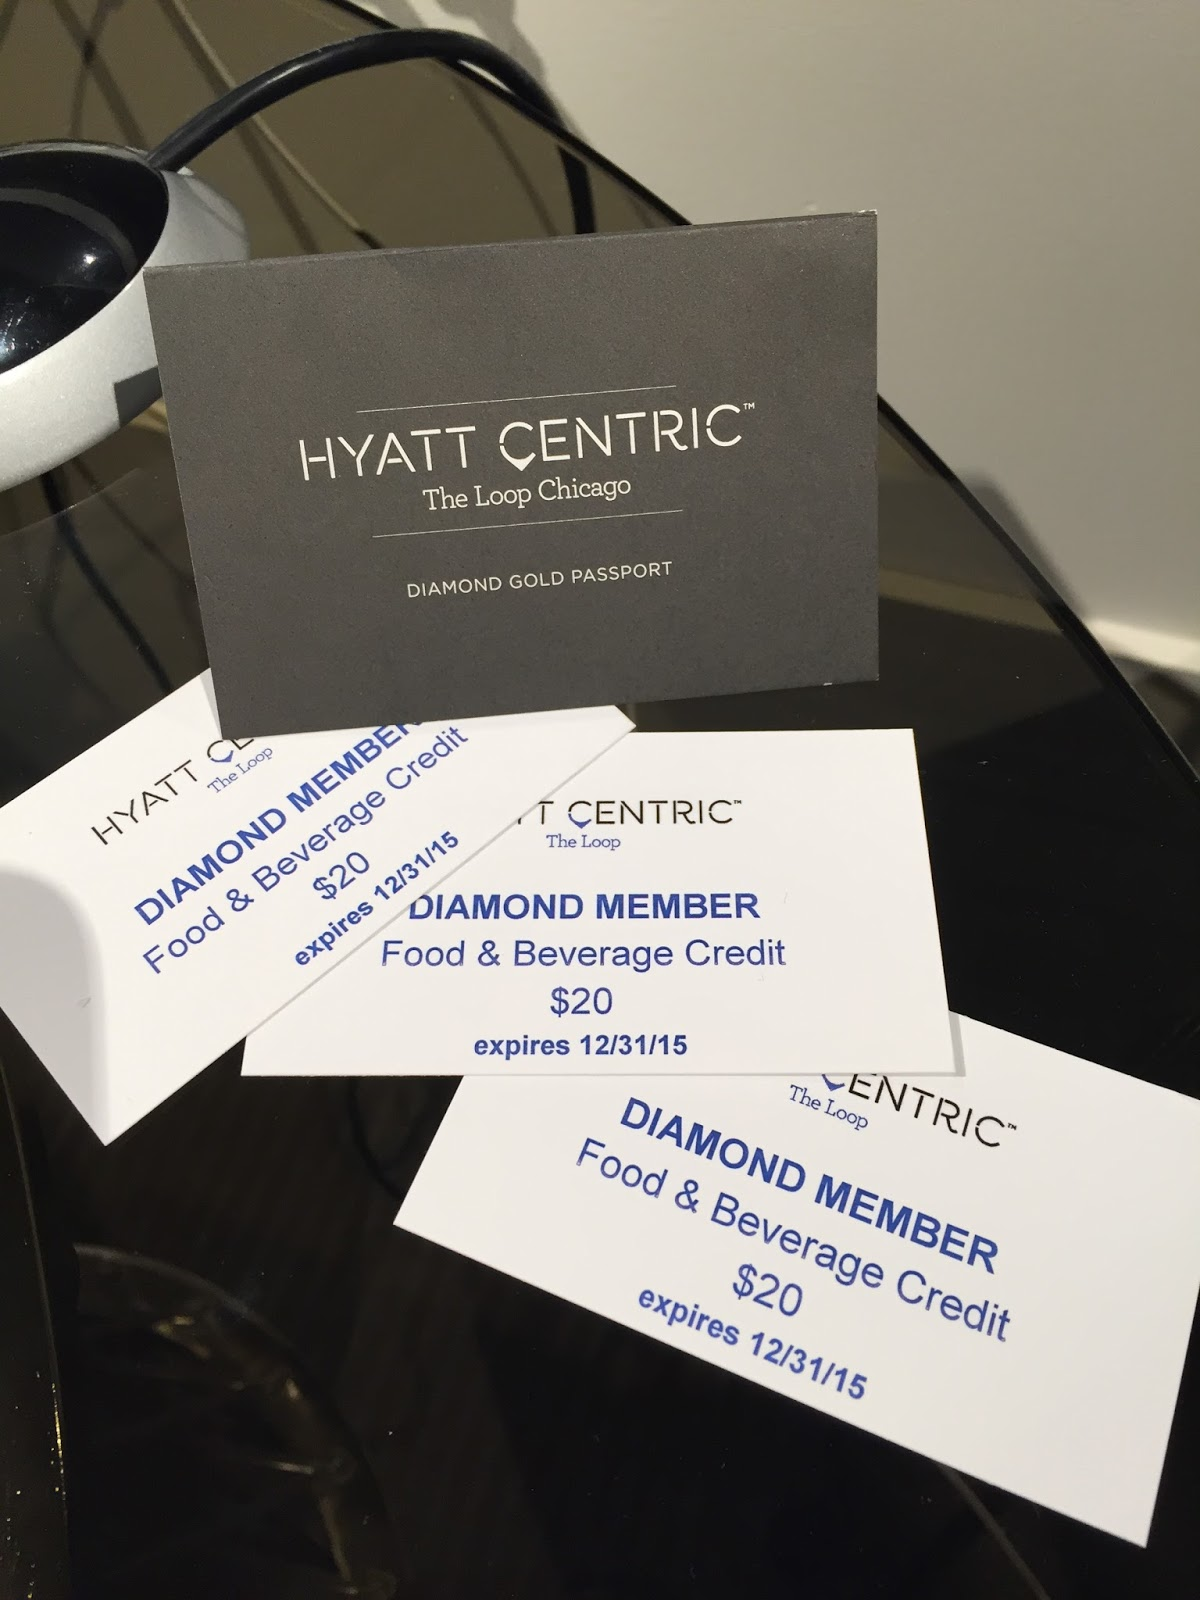 The first class project hotel review hyatt centric the loop chicago a benefit for being a diamond member he only handed us two vouchers at first but then i asked if that was enough for breakfast it was a fancy magicingreecefo Choice Image